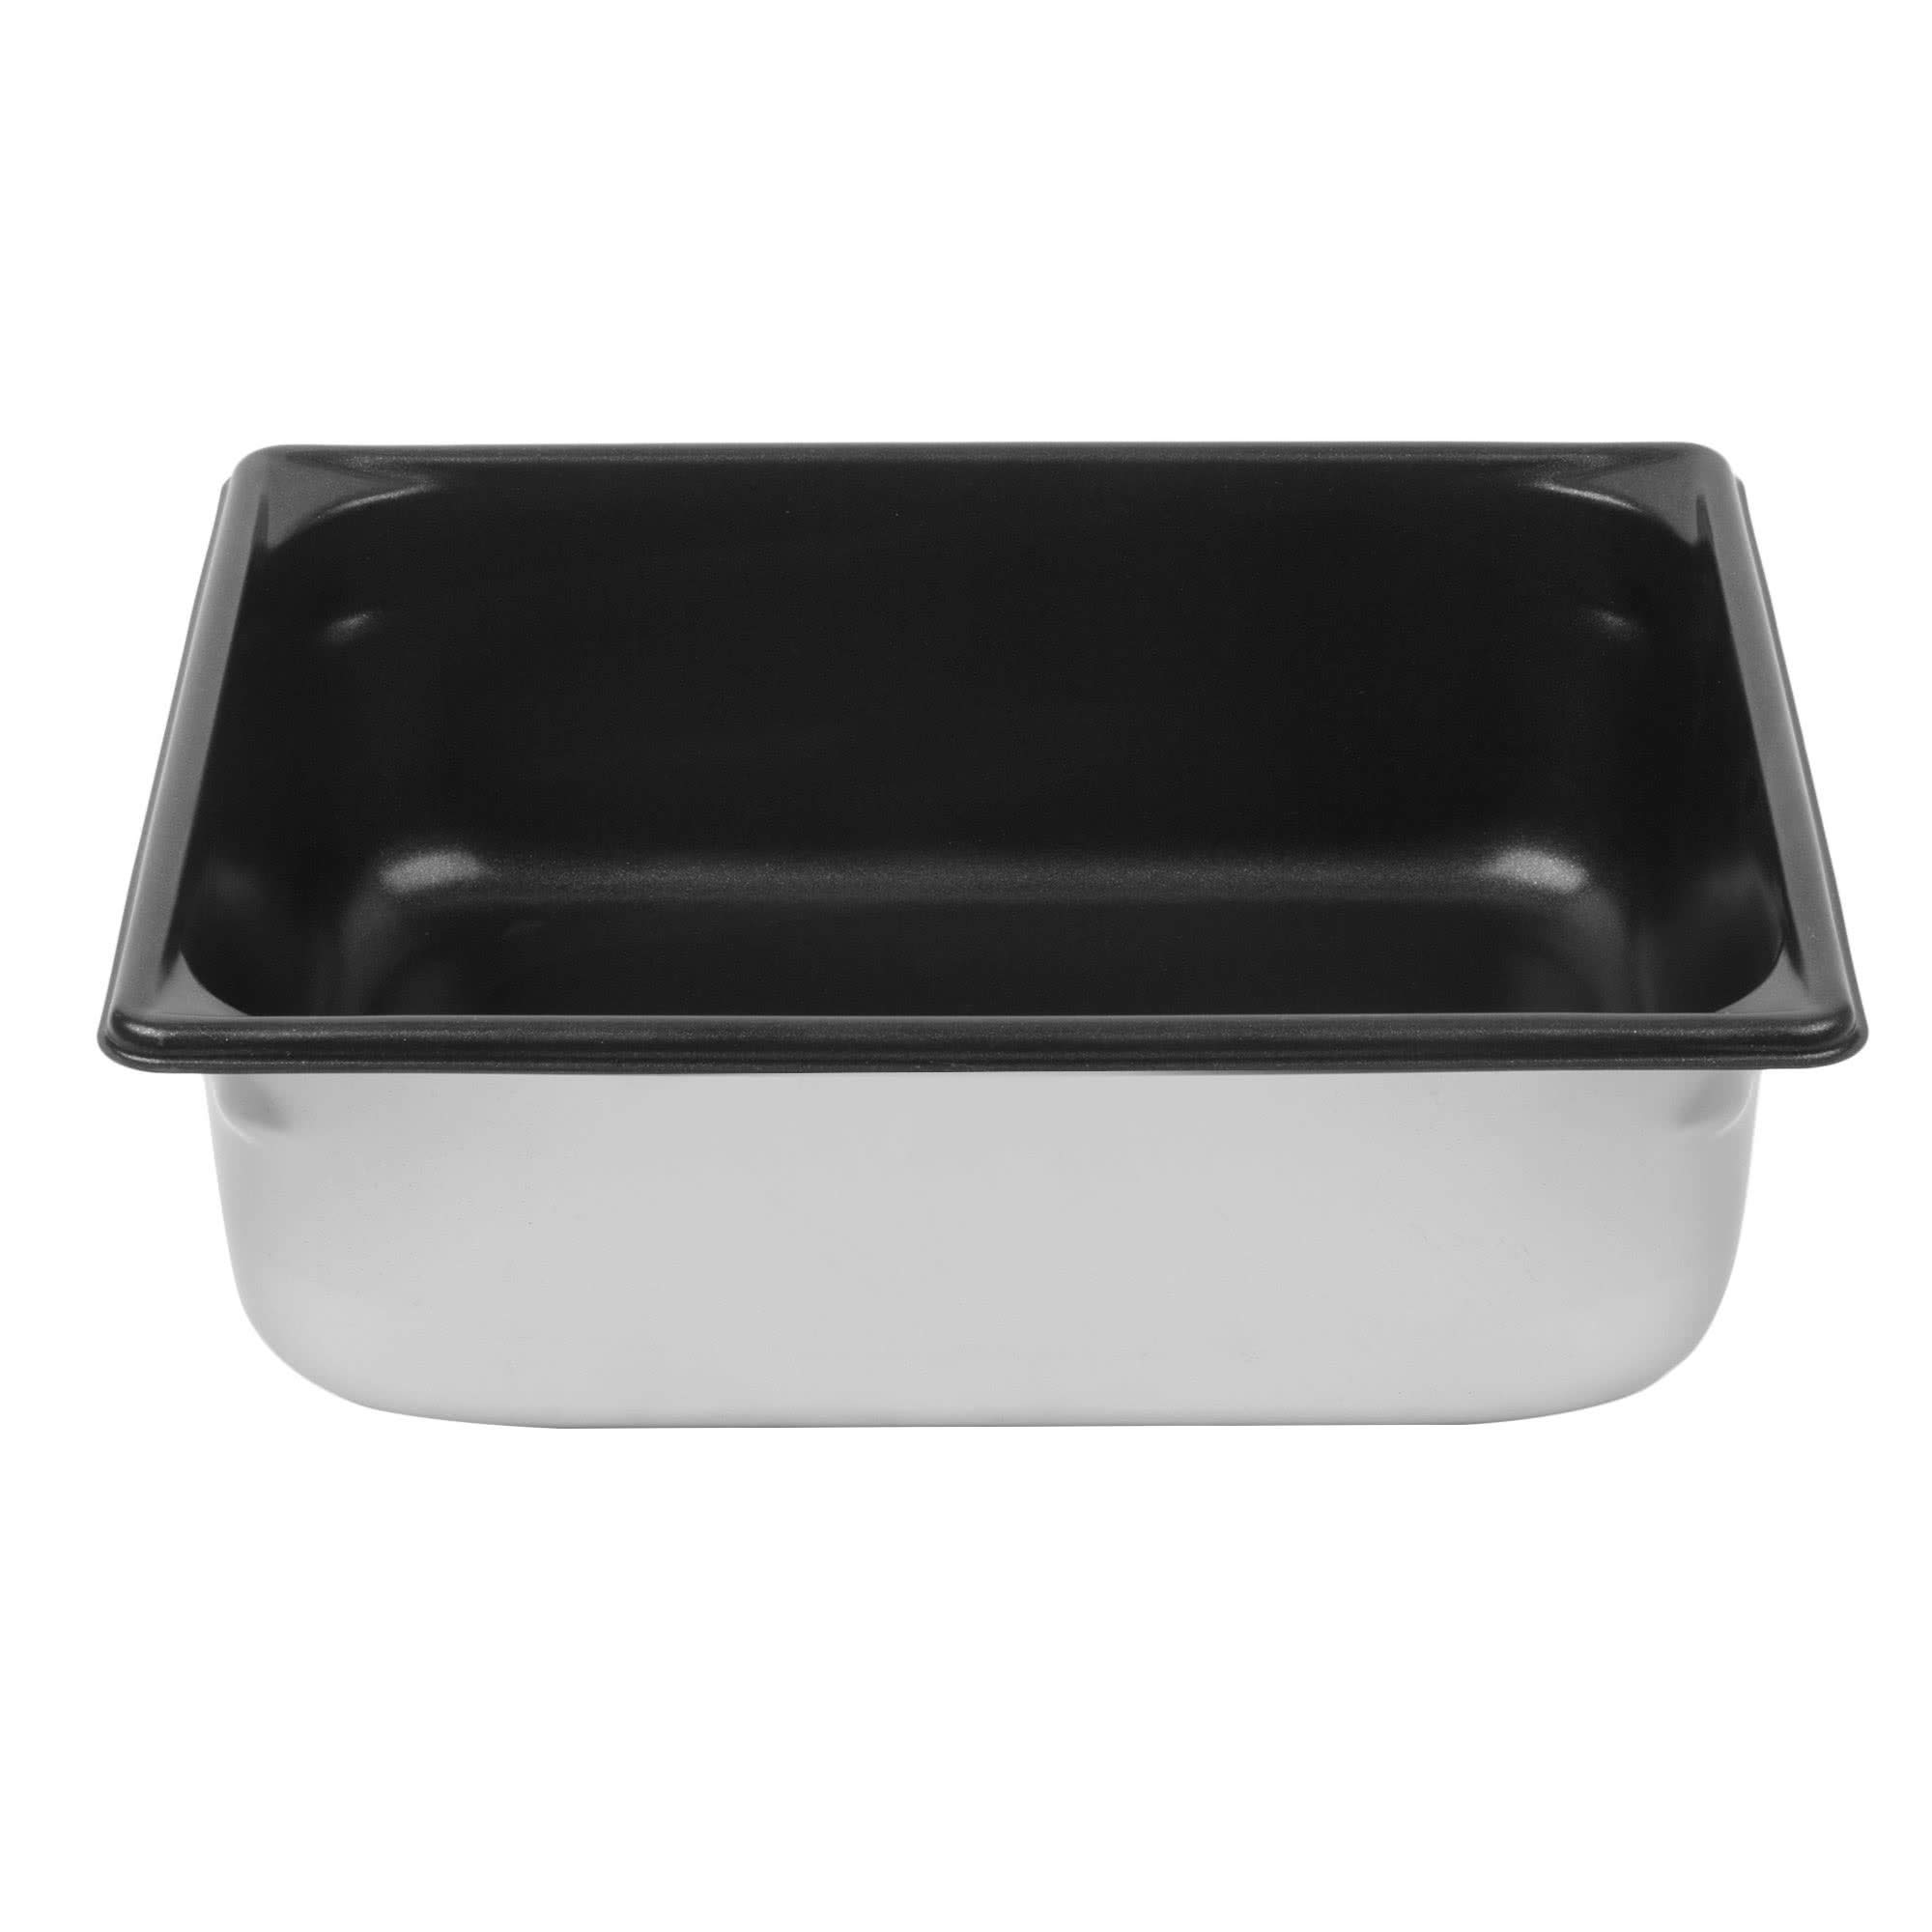 TableTop King 70242 Super Pan V 1/2 Size Anti-Jam Stainless Steel SteelCoat x3 Non-Stick Steam Table/Hotel Pan - 4'' Deep by TableTop King